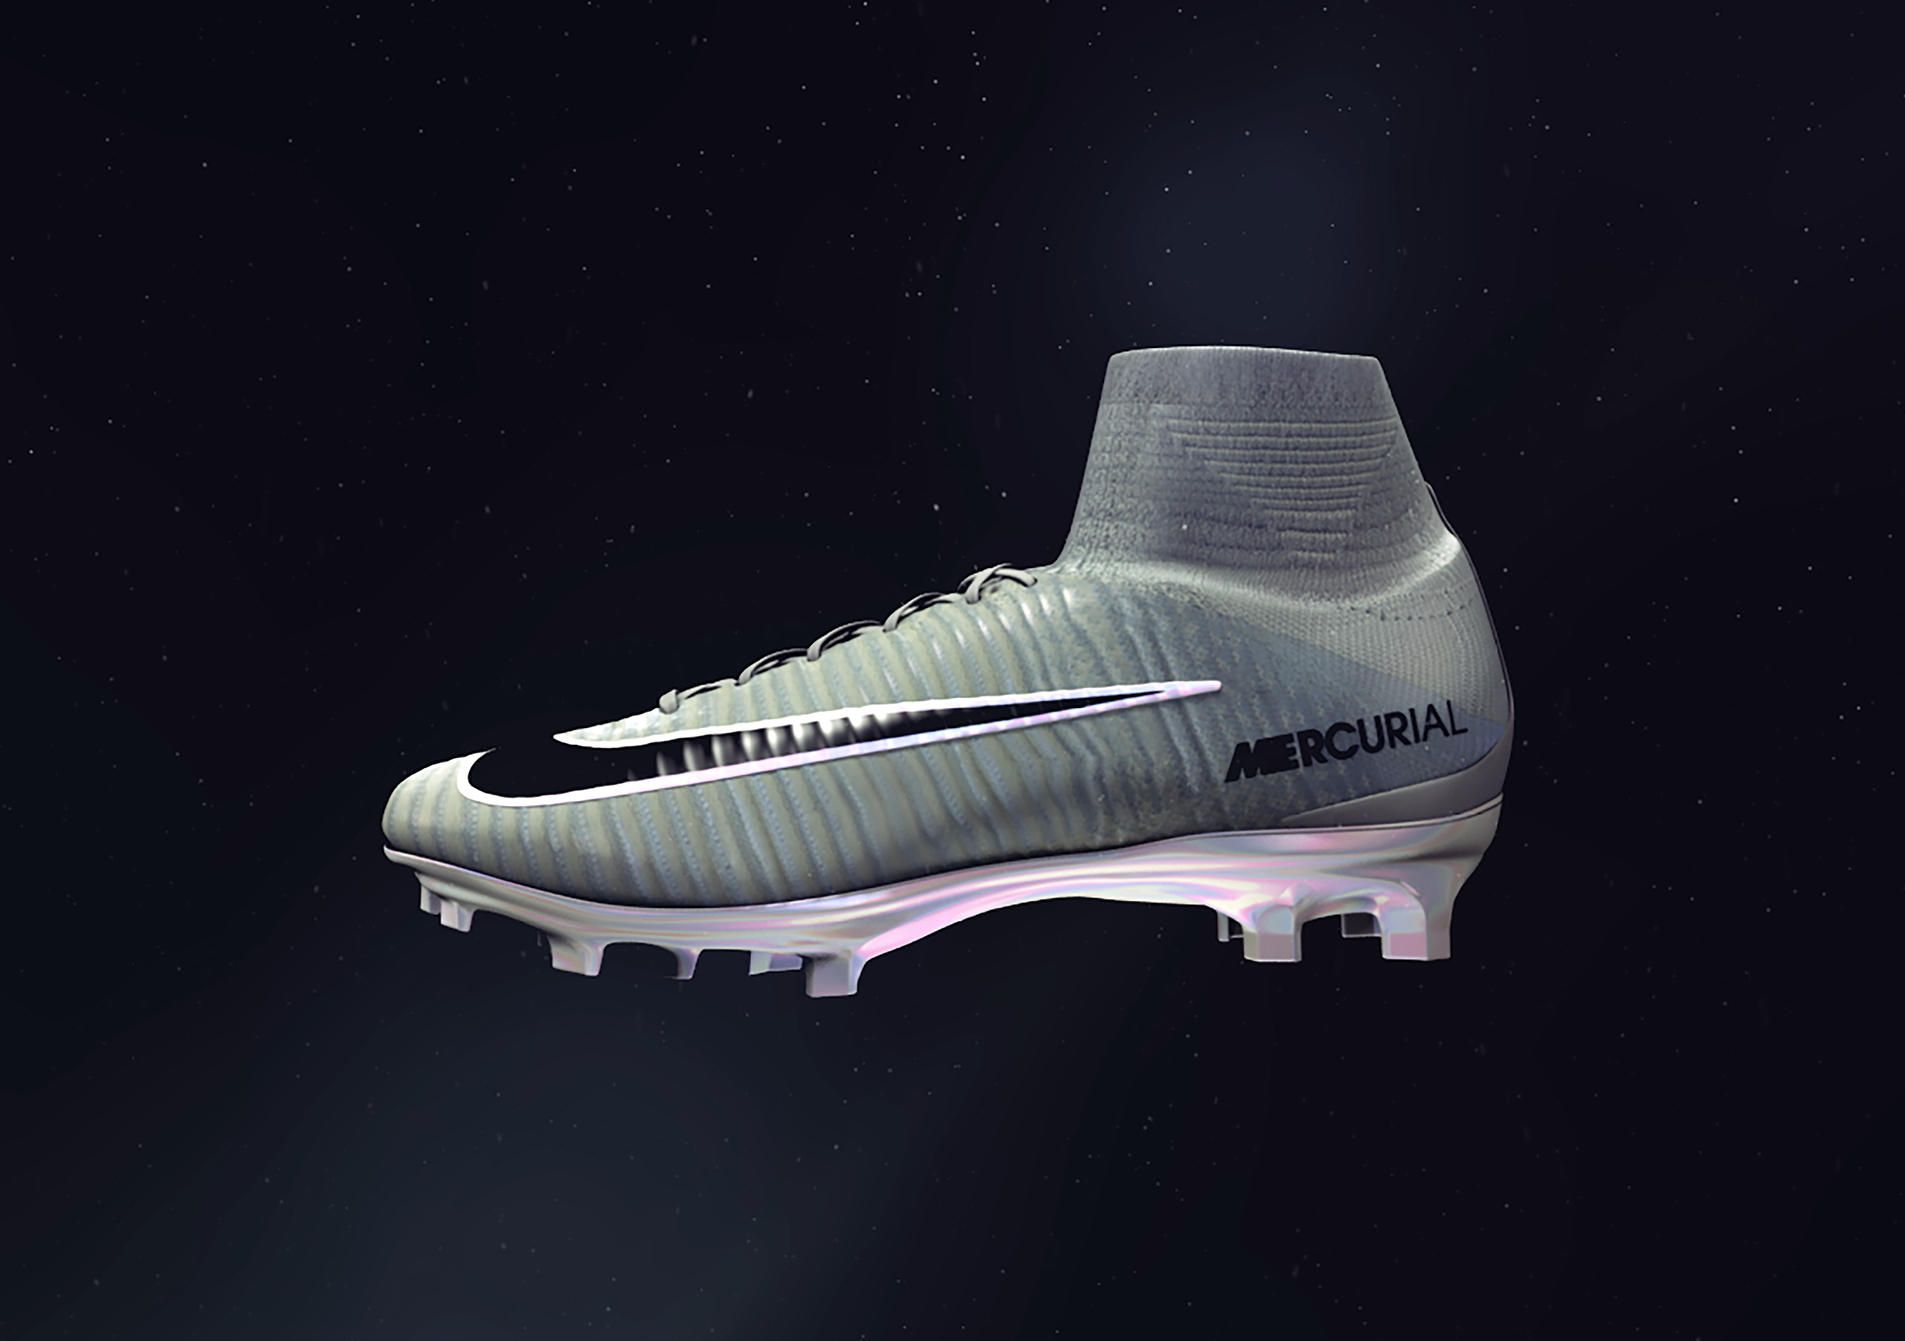 c10404ccf22 The Nike Mercurial Superfly Is Engineered to Unleash Speed - Freshness Mag